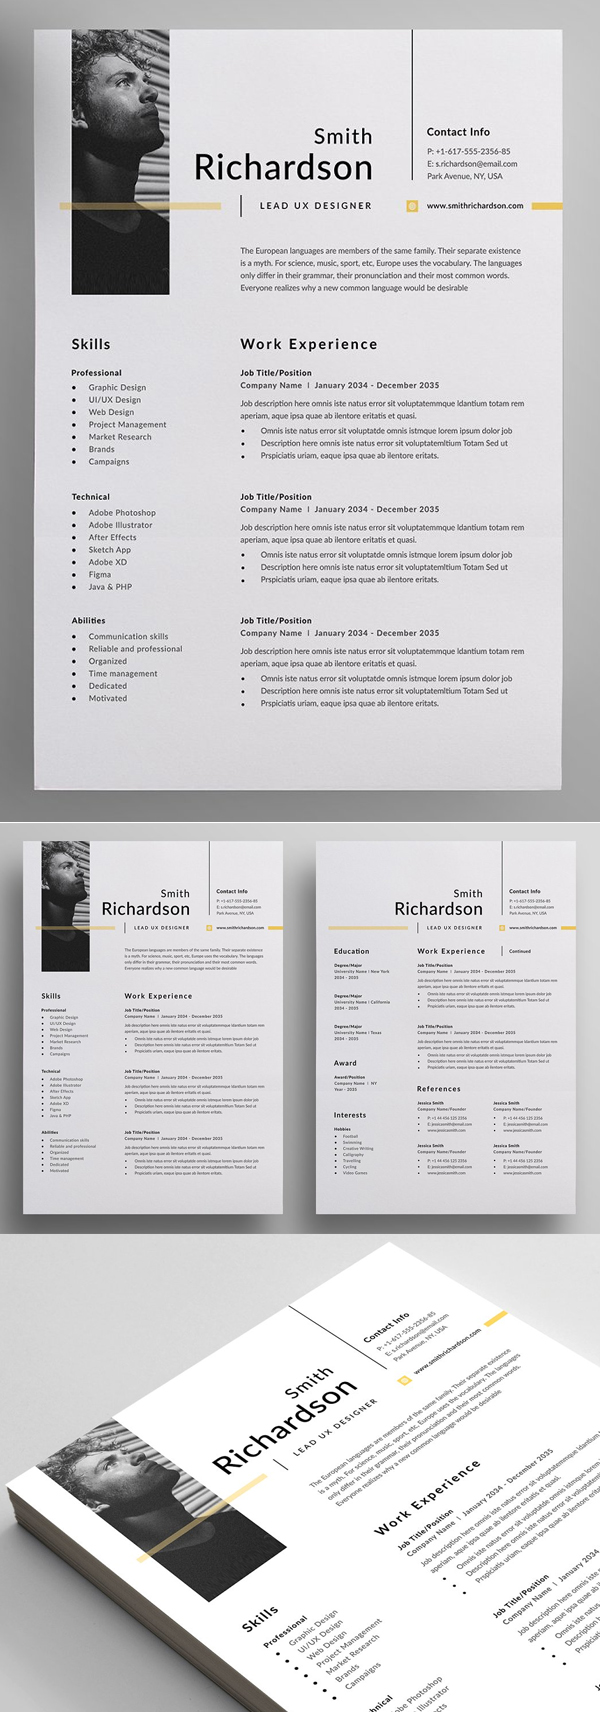 50 Best Resume Templates Of 2020 - 18